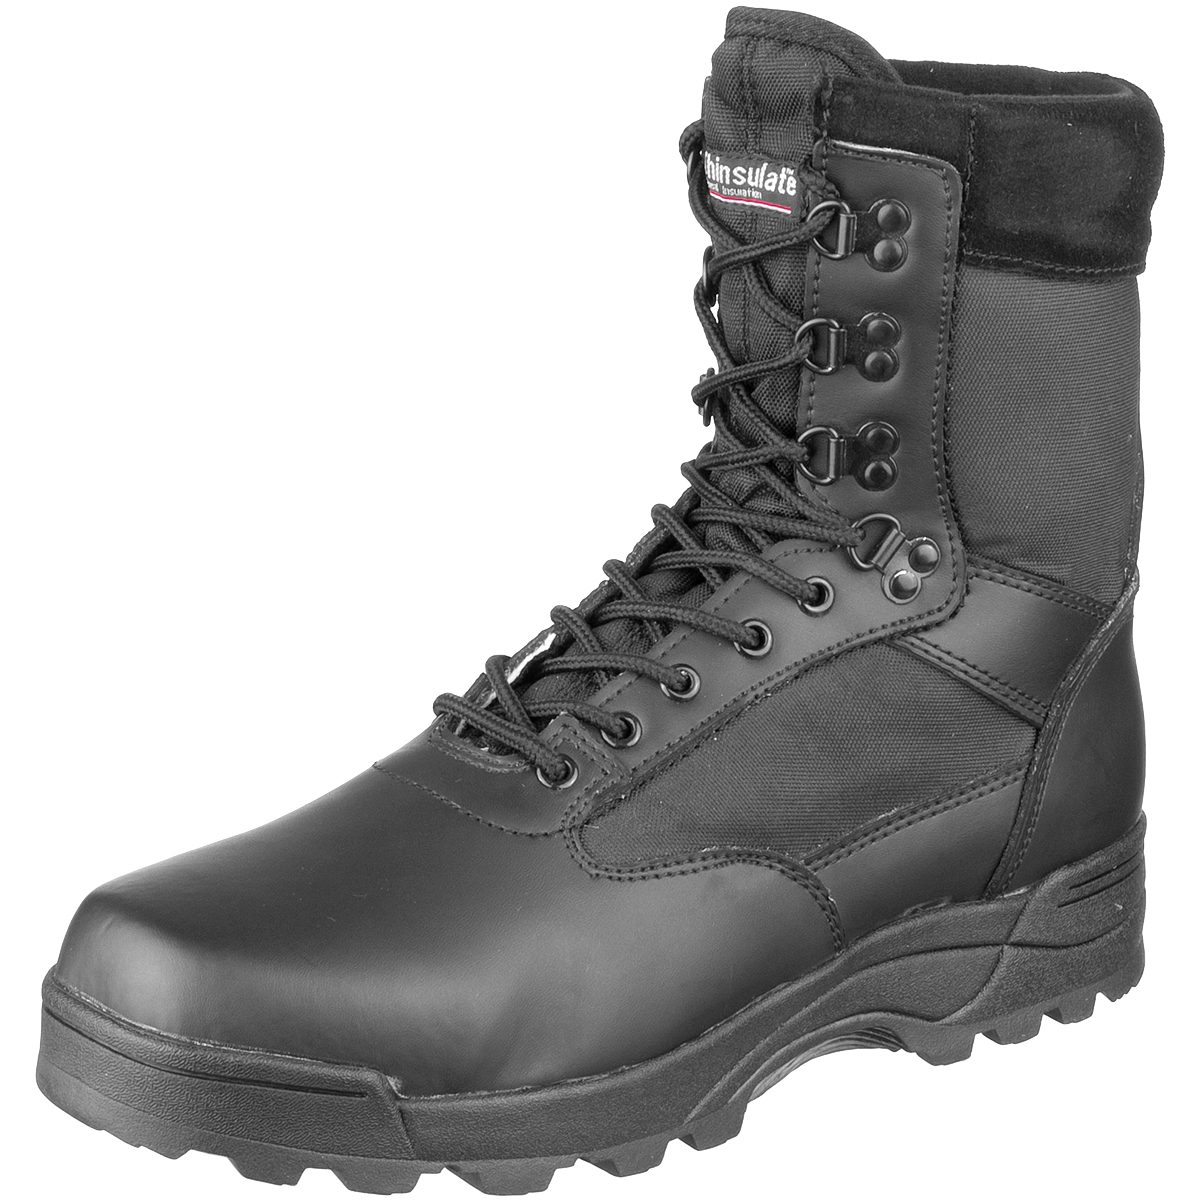 Sentinel Brandit Tactical Military Combat Boots Security Police Leather  Footwear Black ed3fcb6e445